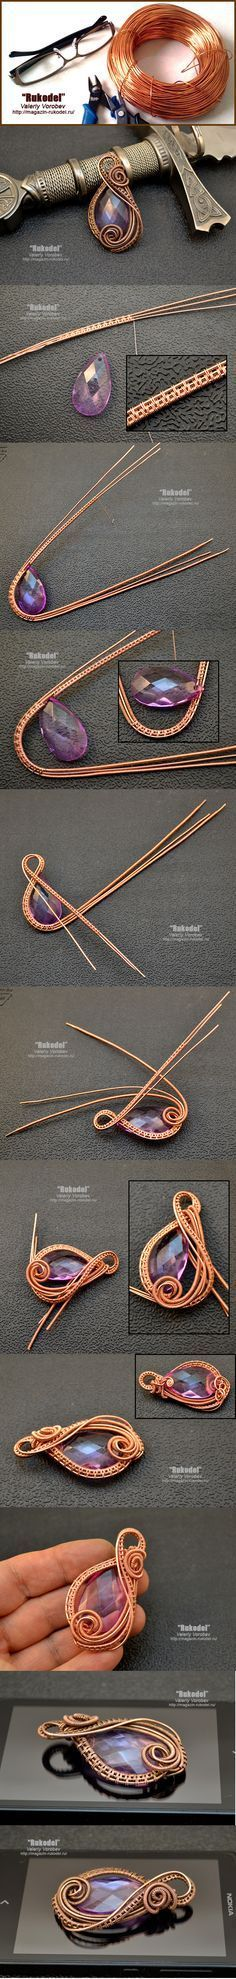 Weave wire jewelry. Photography lesson for beginners.   Crafts